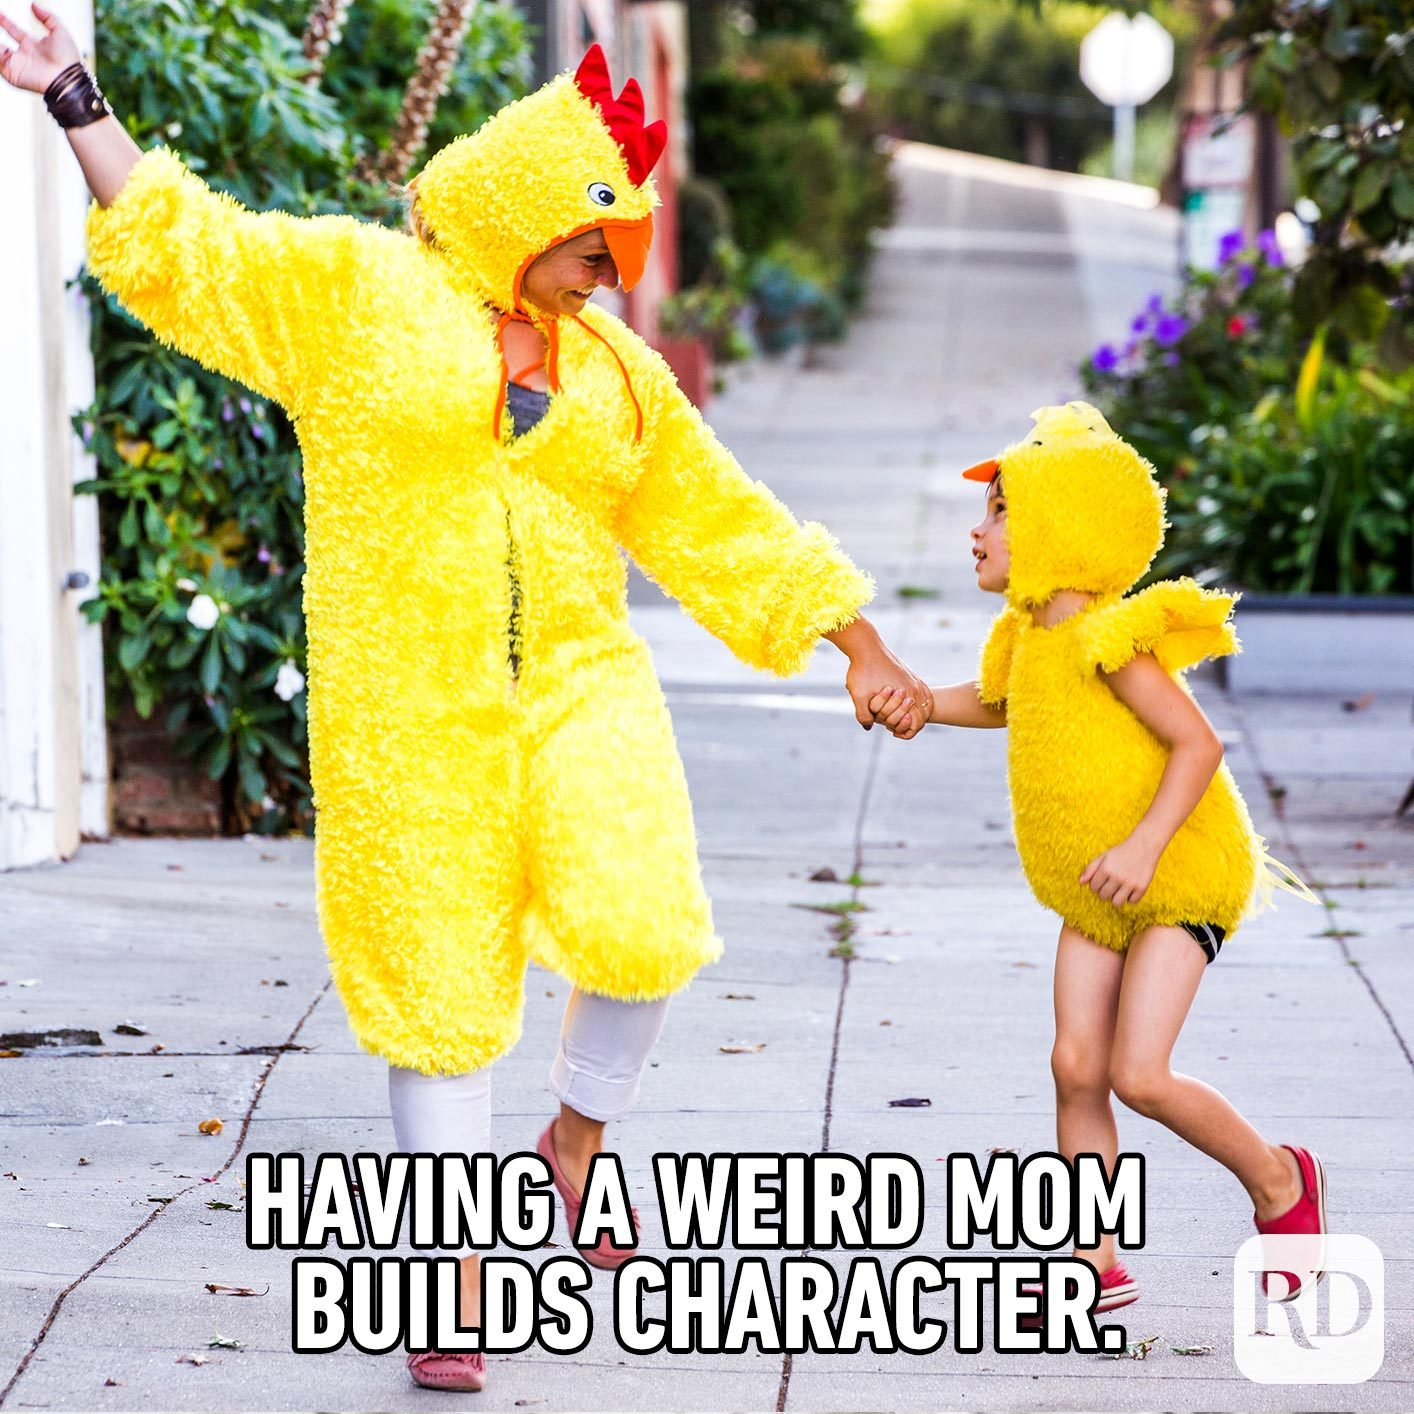 Mom and child in matching chicken costumes. MEME TEXT: Having a weird mom builds character